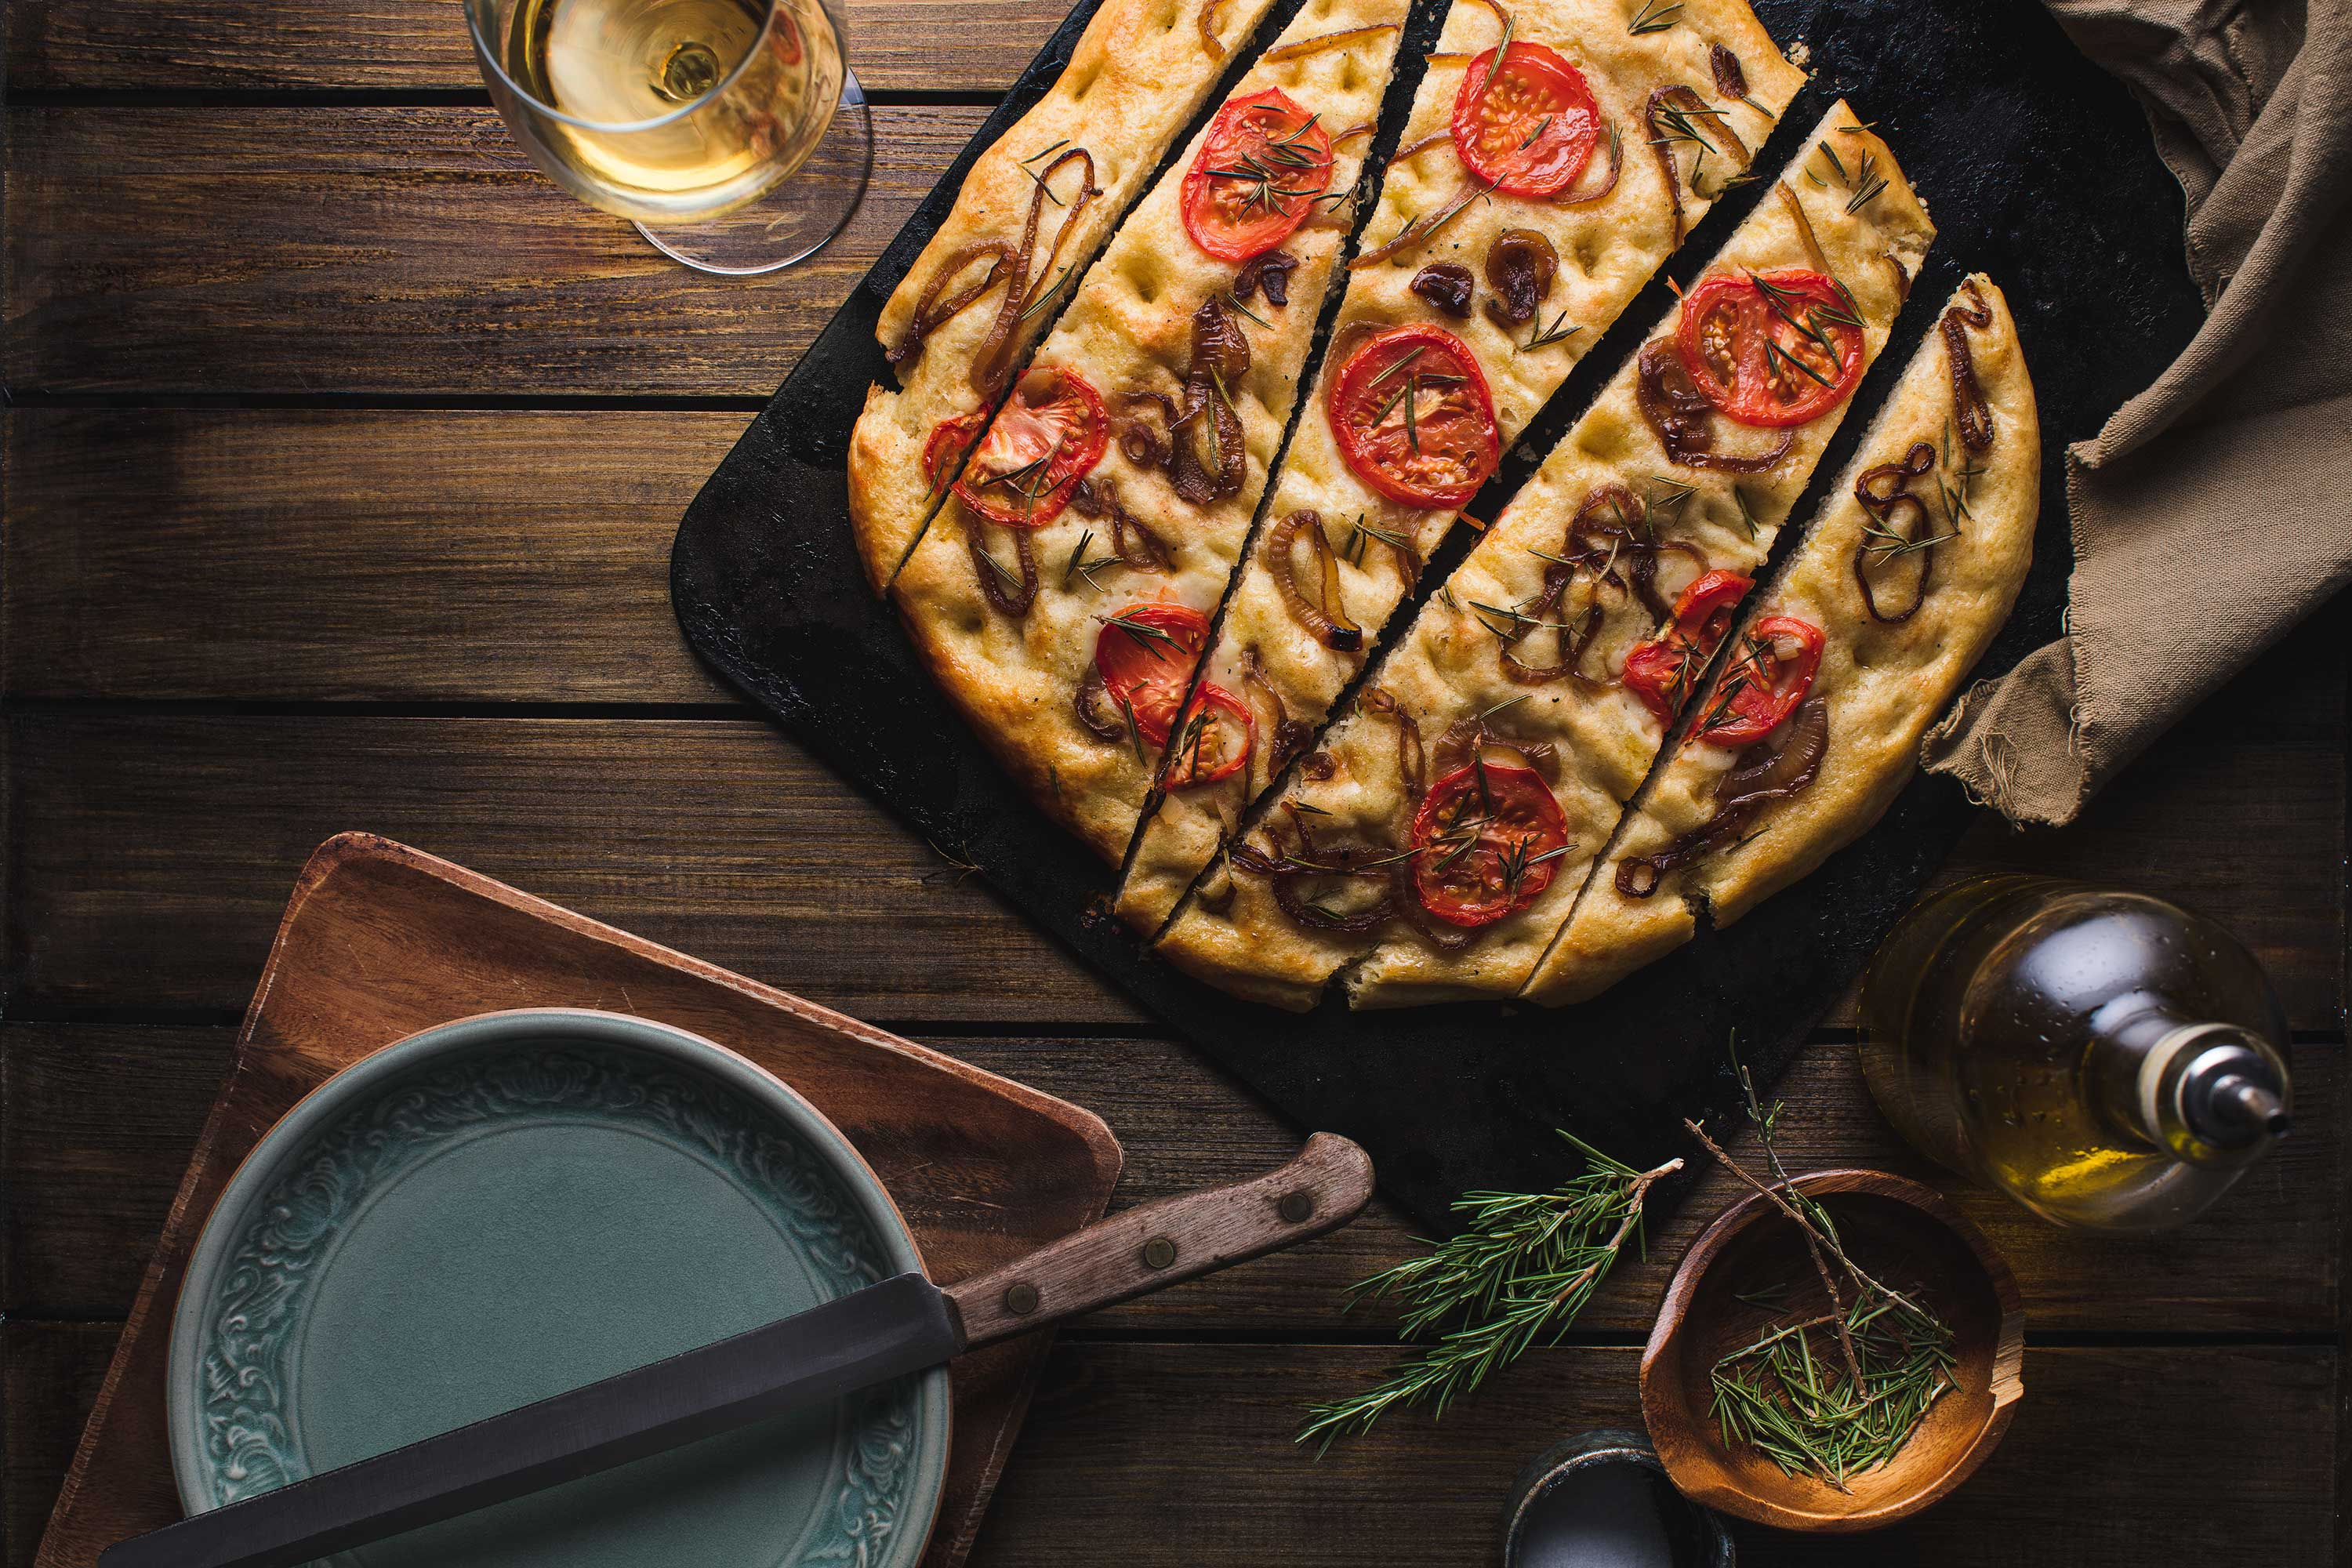 Focaccia Recipe With Caramelized Onions Tomatoes Rosemary